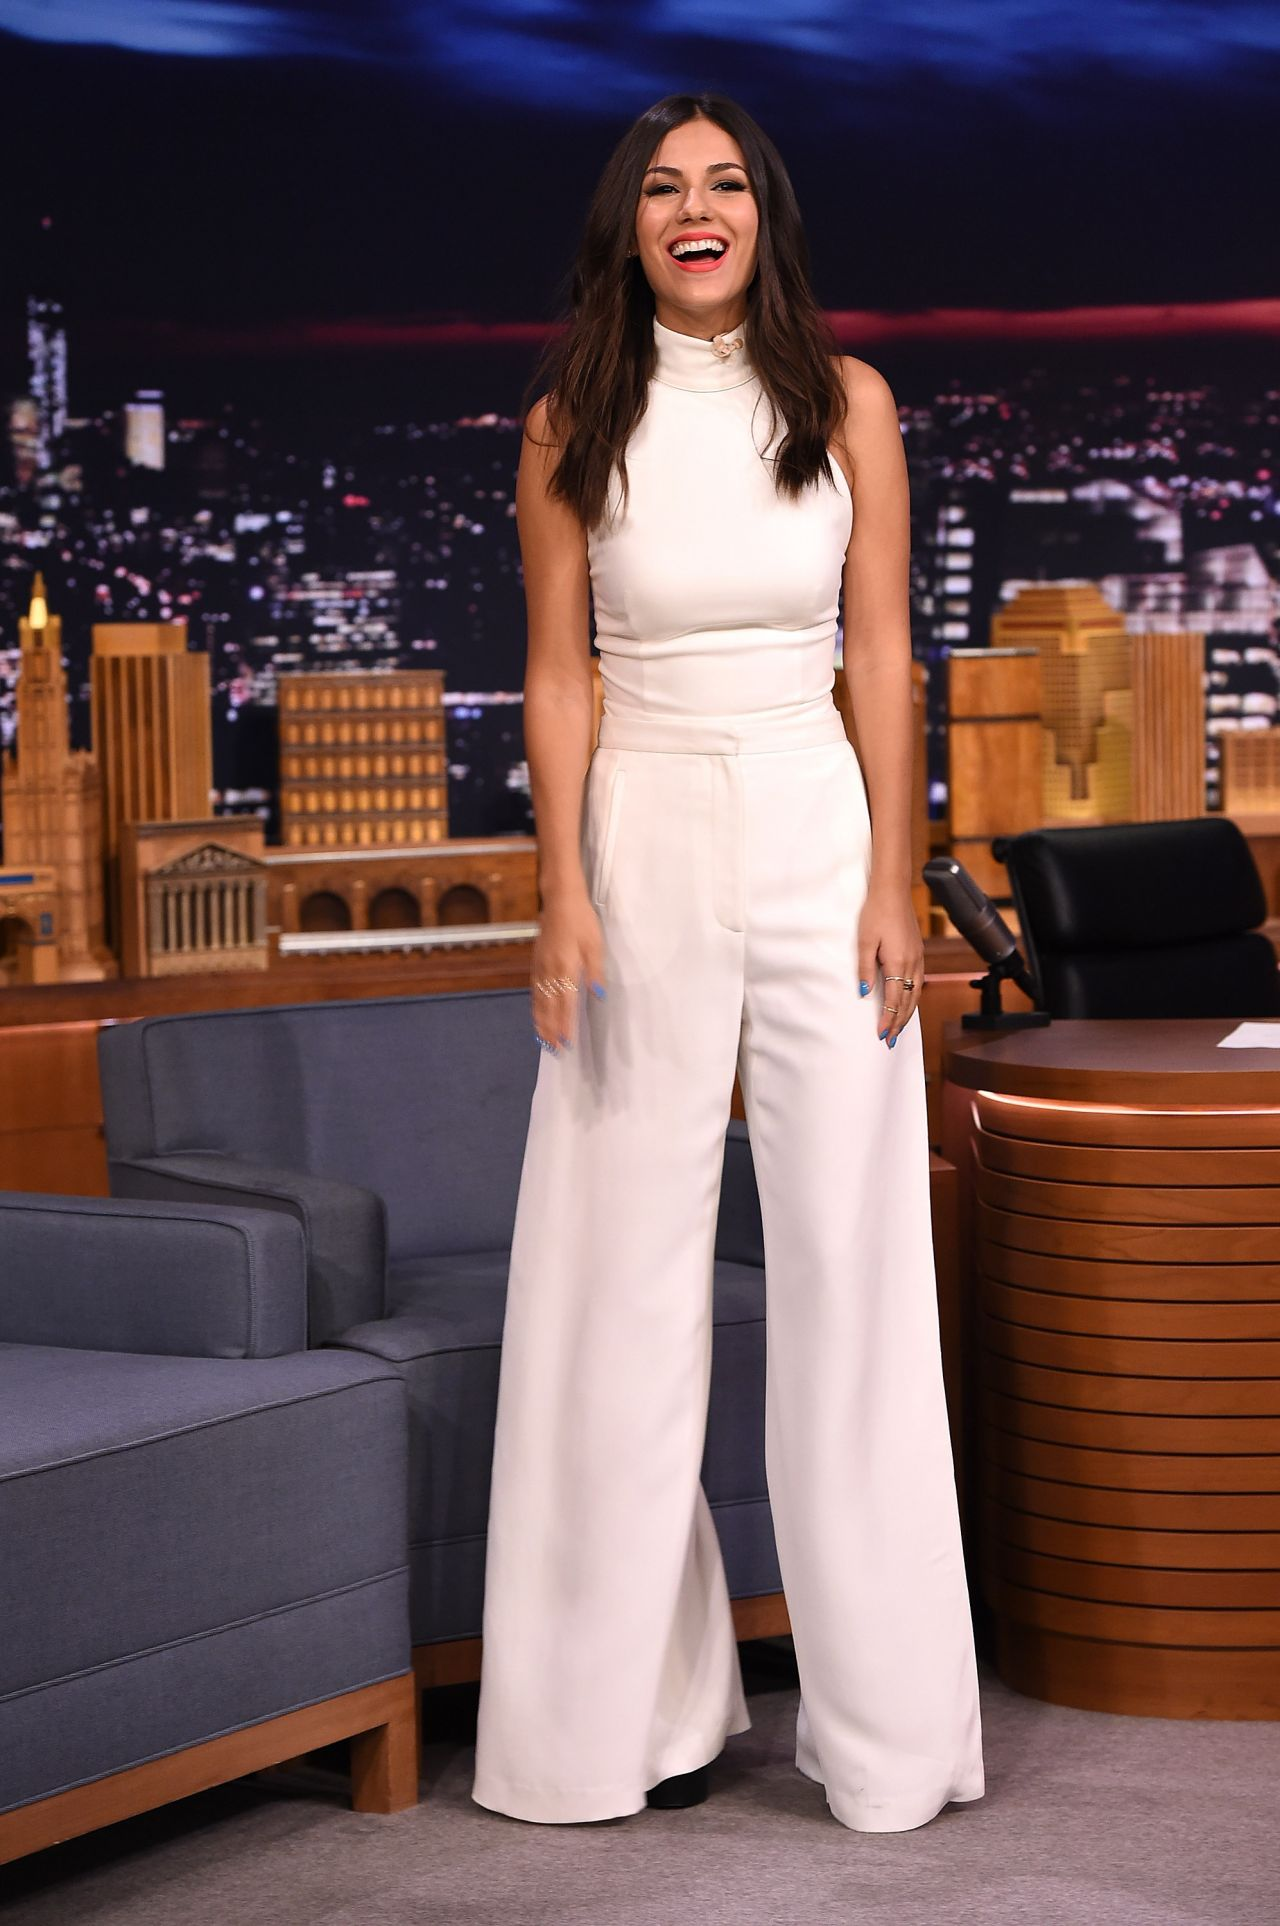 victoria-justice-visits-the-tonight-show-starring-jimmy-fallon-august-2015_4